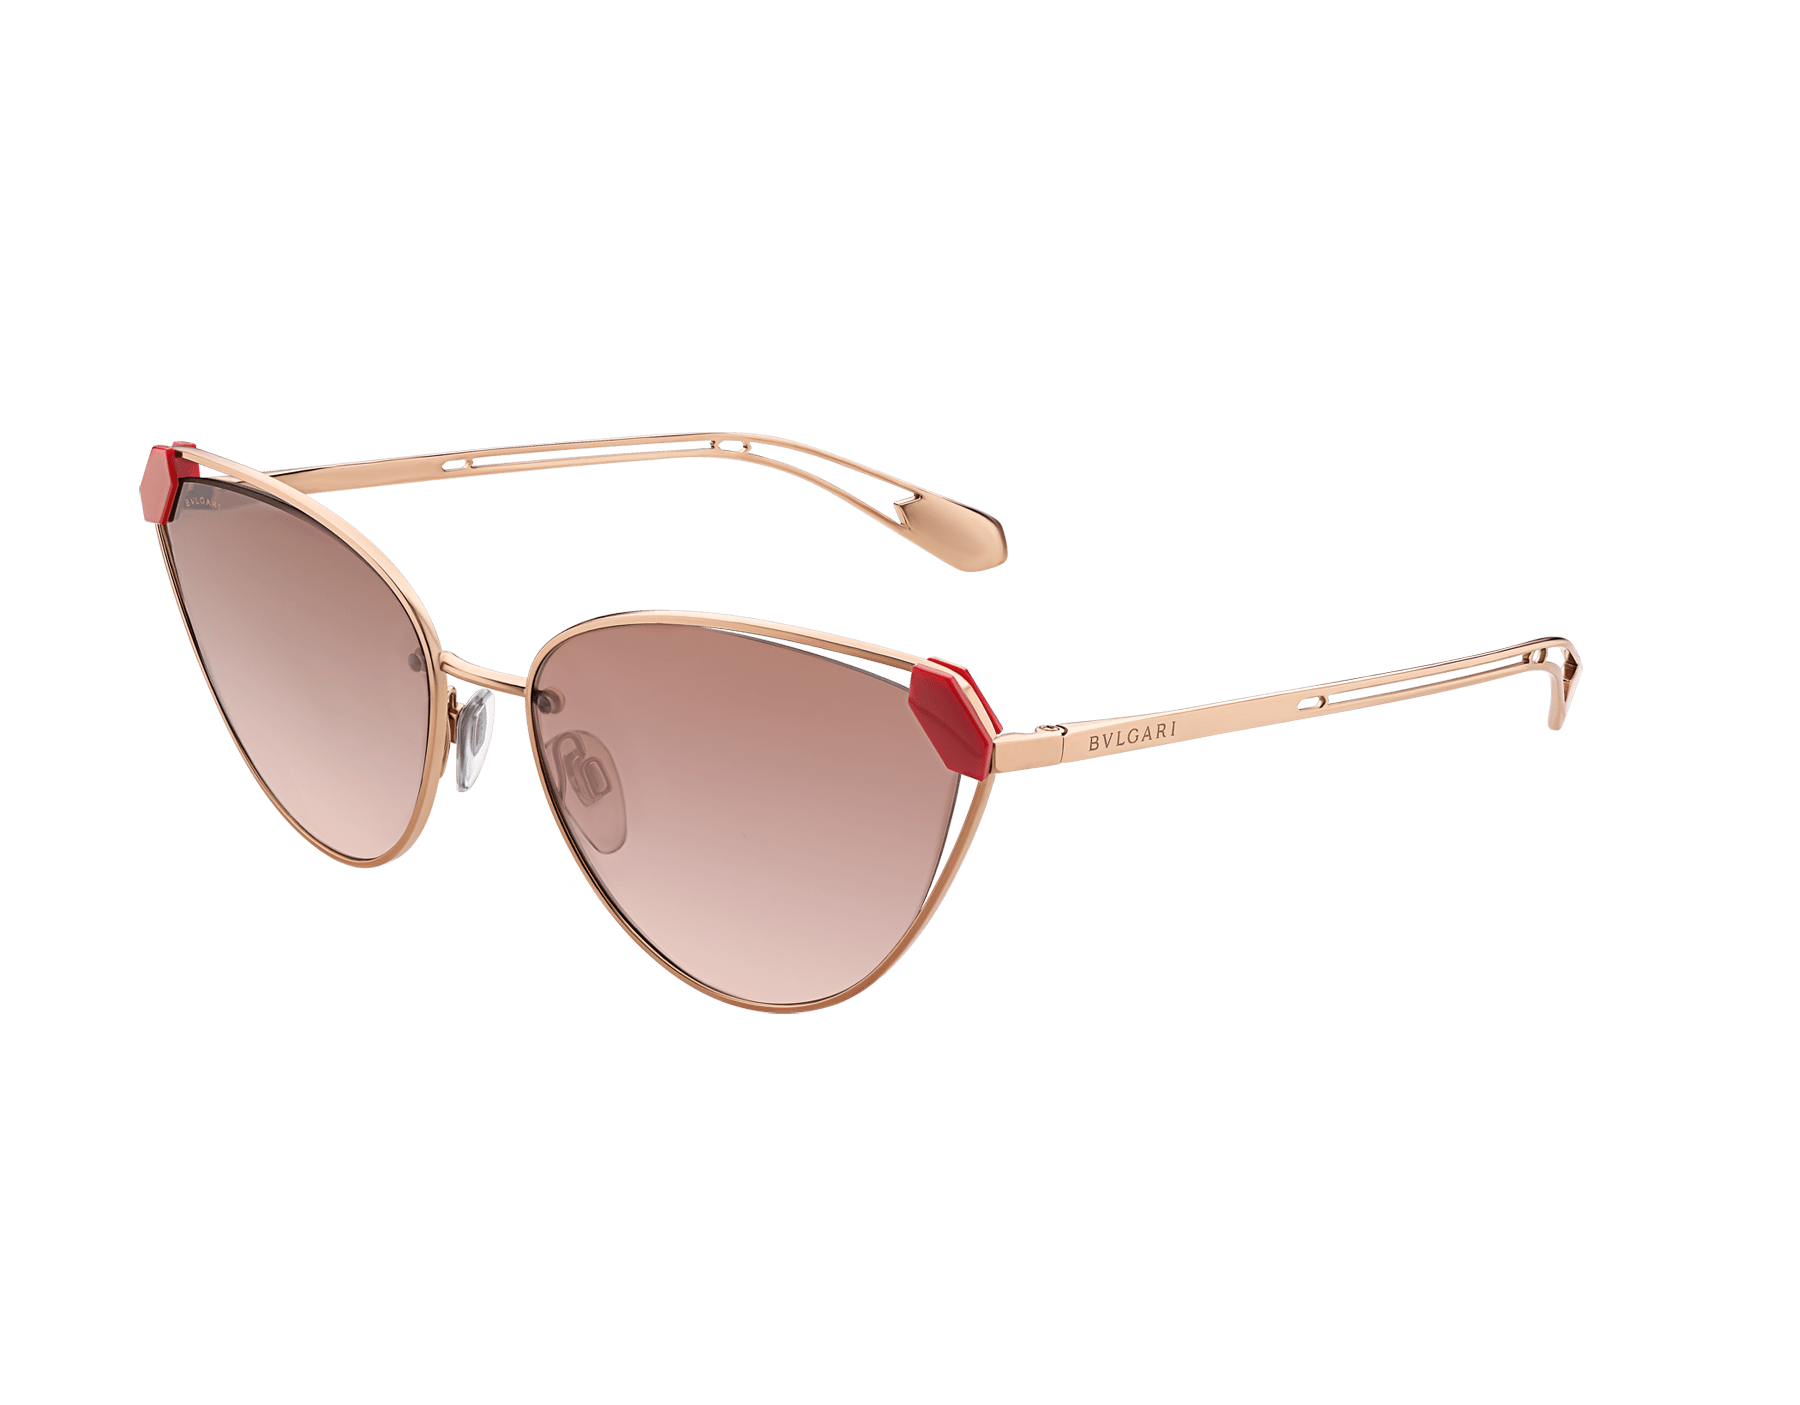 Bvlgari Serpenti Candy Scale narrow cat-eye metal sunglasses. 903729 image 1